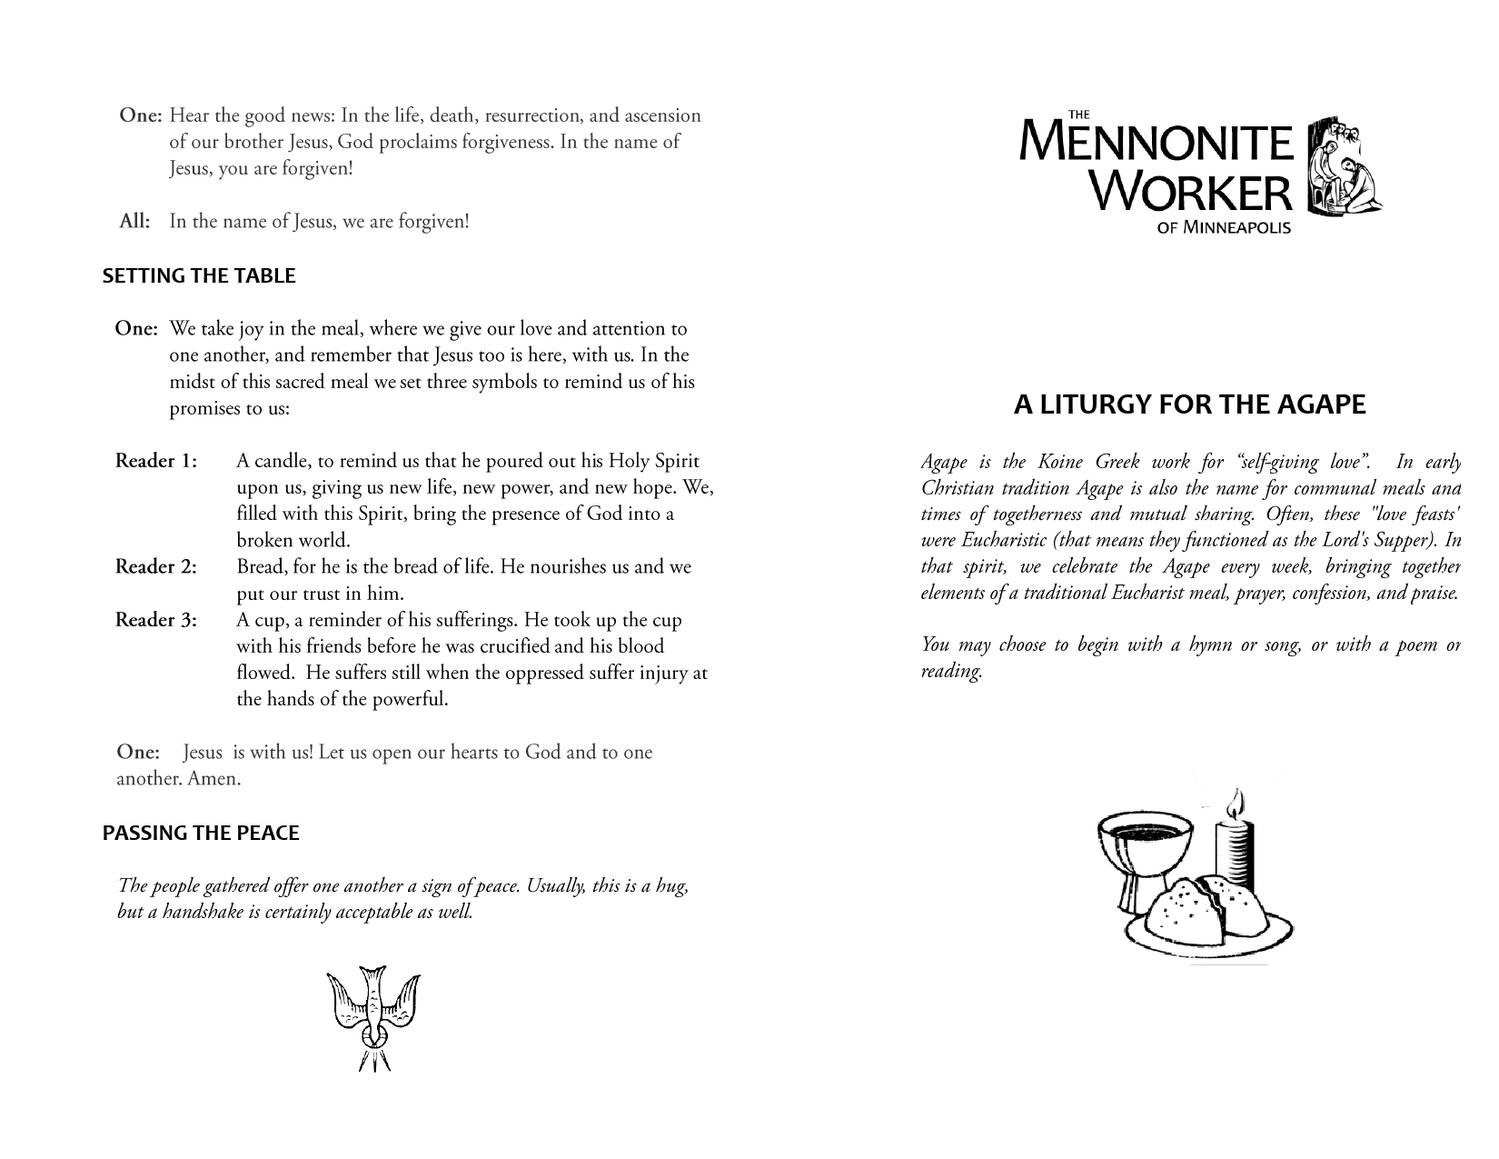 Agape 2 May 2013 By The Mennonite Worker Issuu